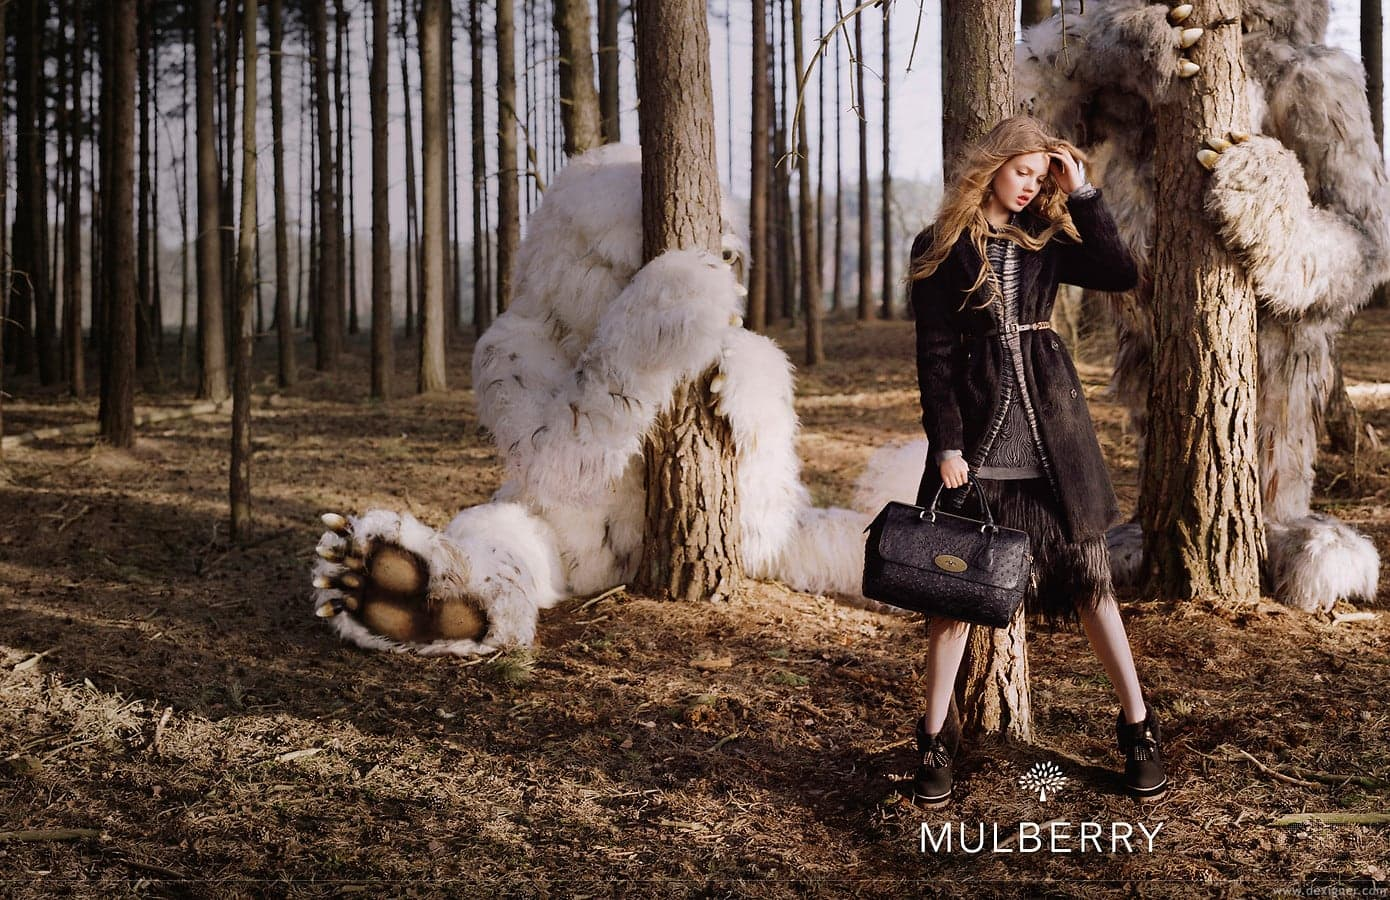 A Forest Fairytale for Mulberry -Tim Walker, photographer, photo session, forest, british, advertising campaign